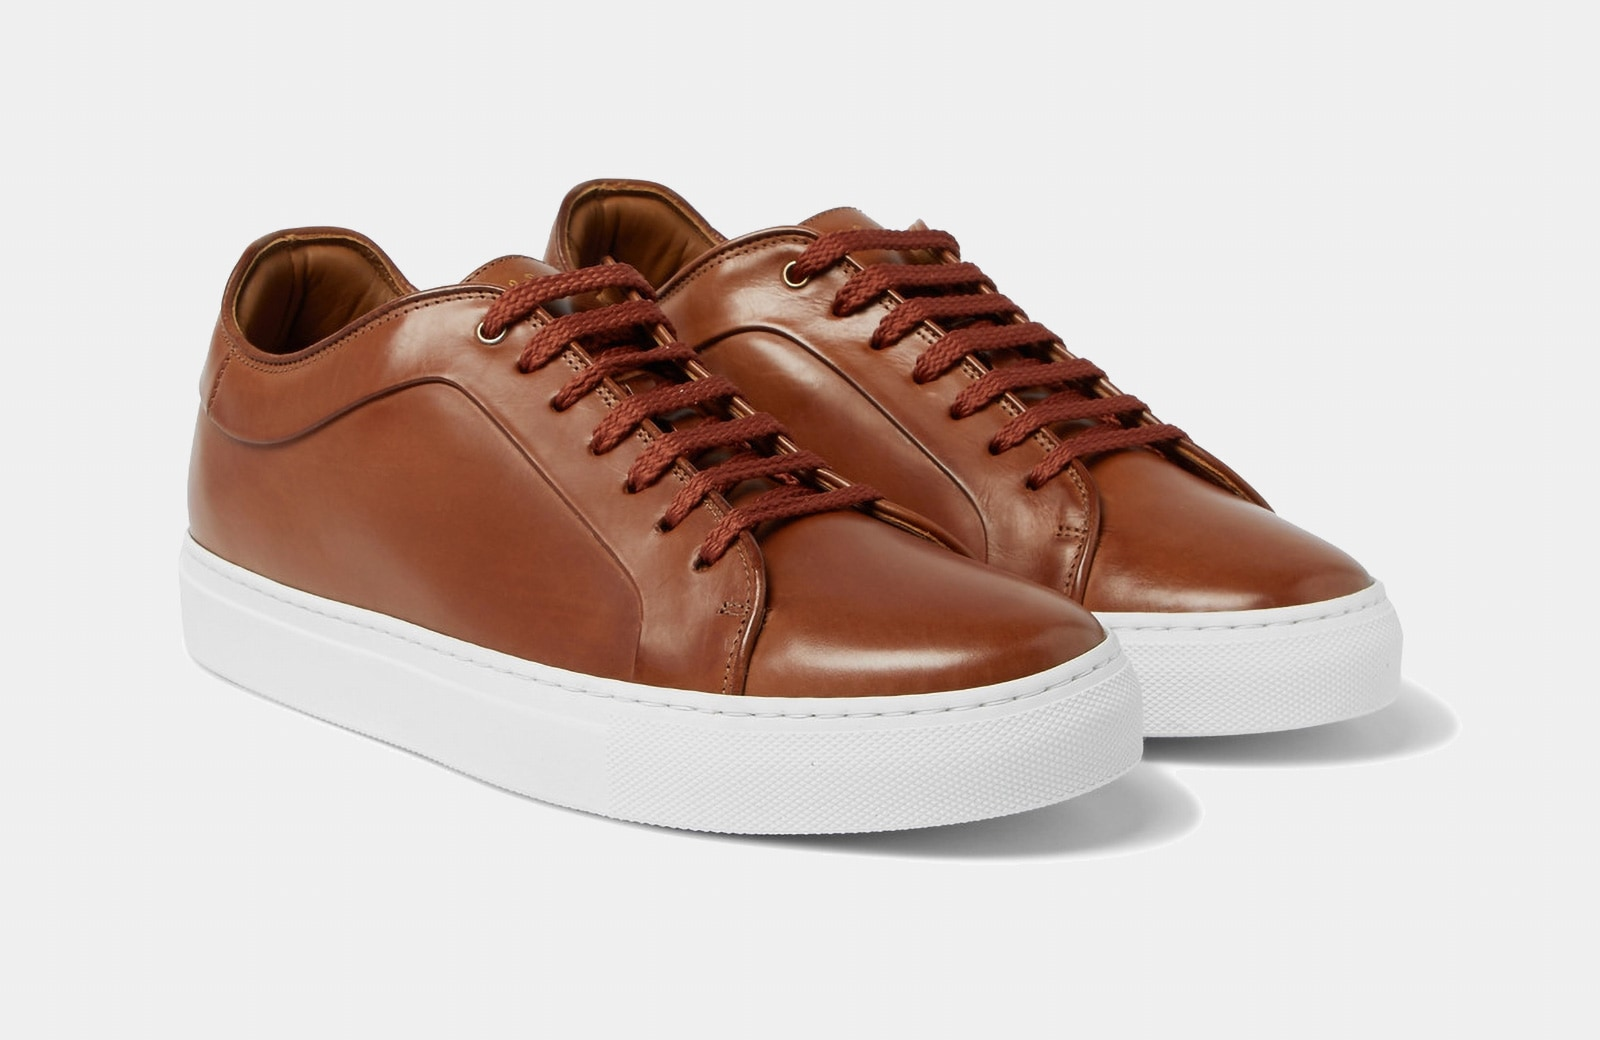 best premium leather sneaker men Paul Smith luxury style - Luxe Digital